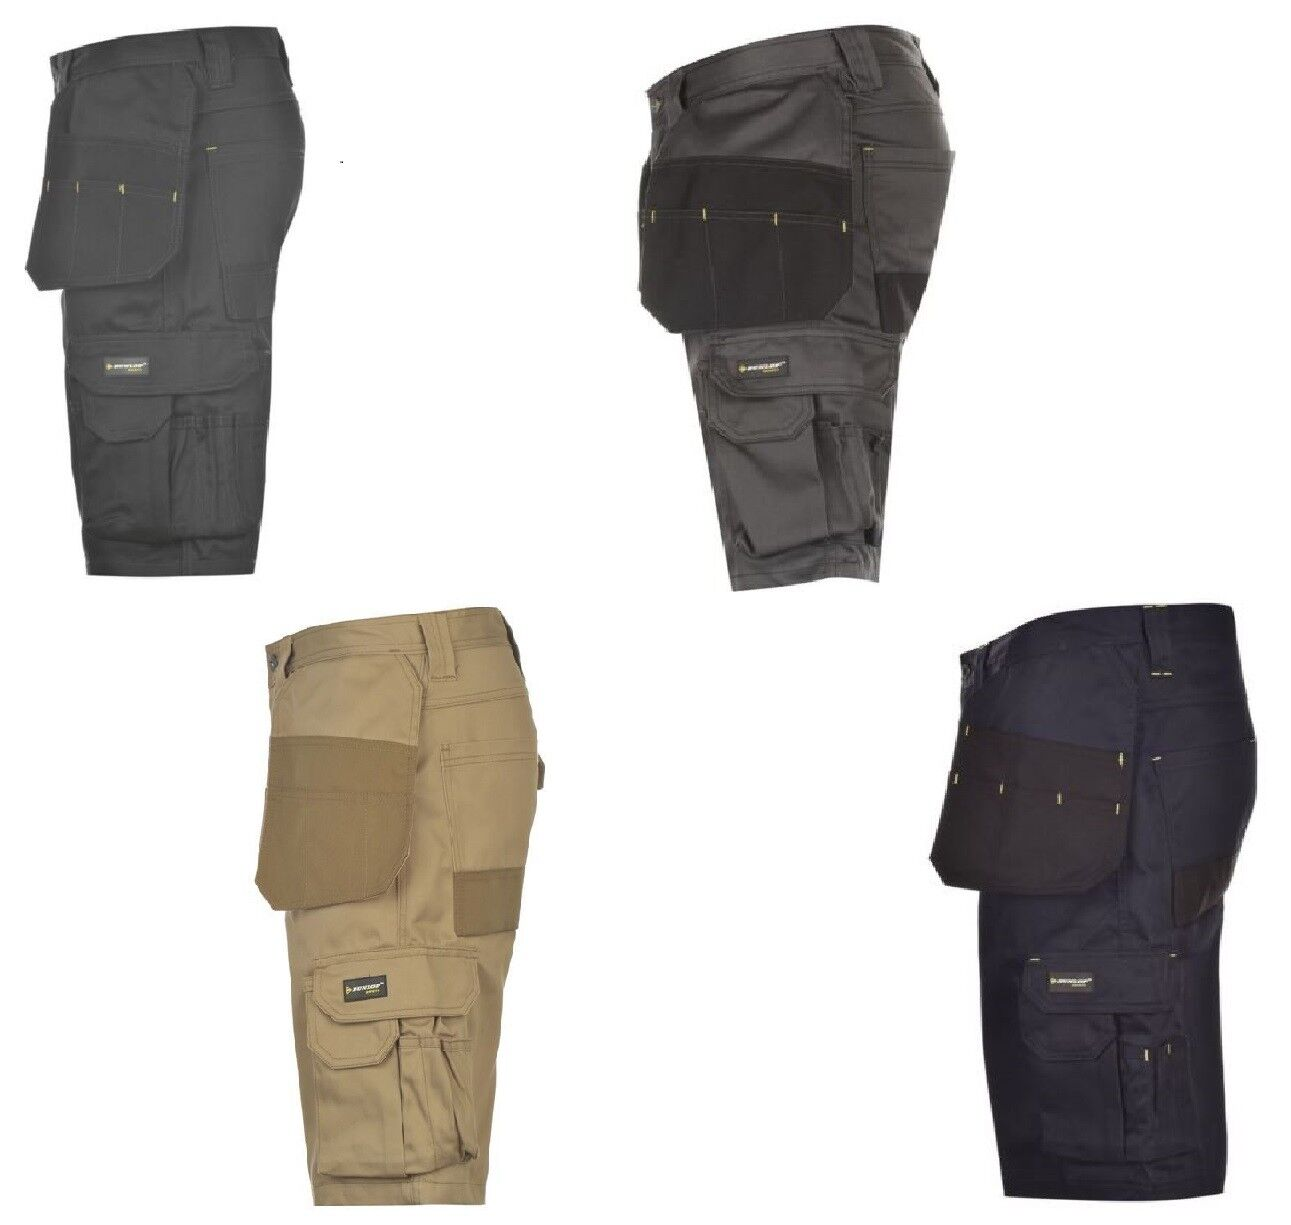 MENS DUNLOP ON SITE WORKWEAR SHORTS-RRP .99-VARIOUS COL SIZES-SALE 15% OFF